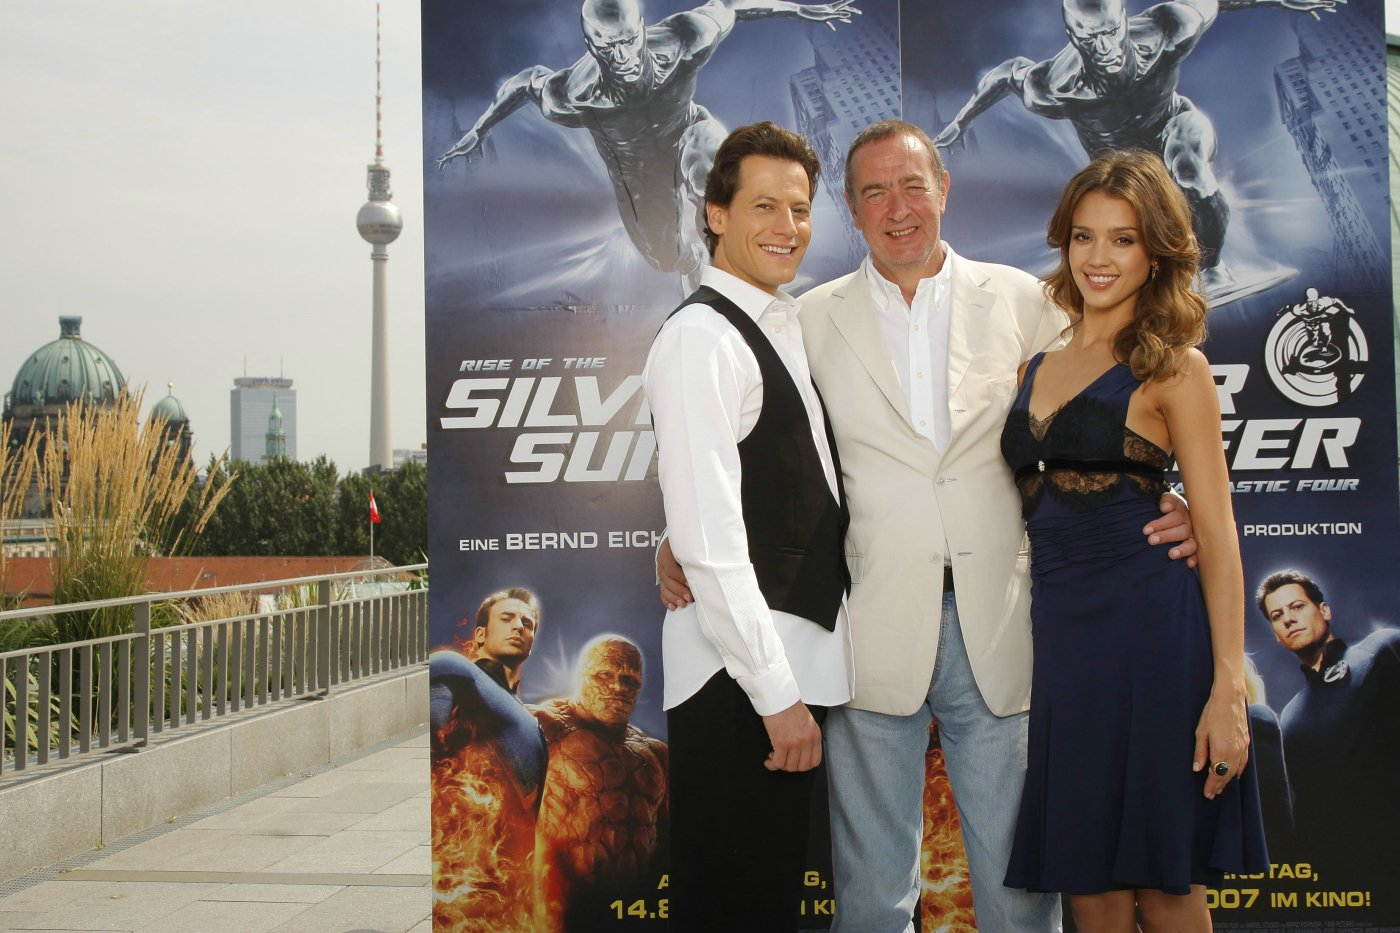 89012_20.07.2007_-_Fantastic_Four_2_Photocall_in_Berlin_002_122_1099lo.jpg